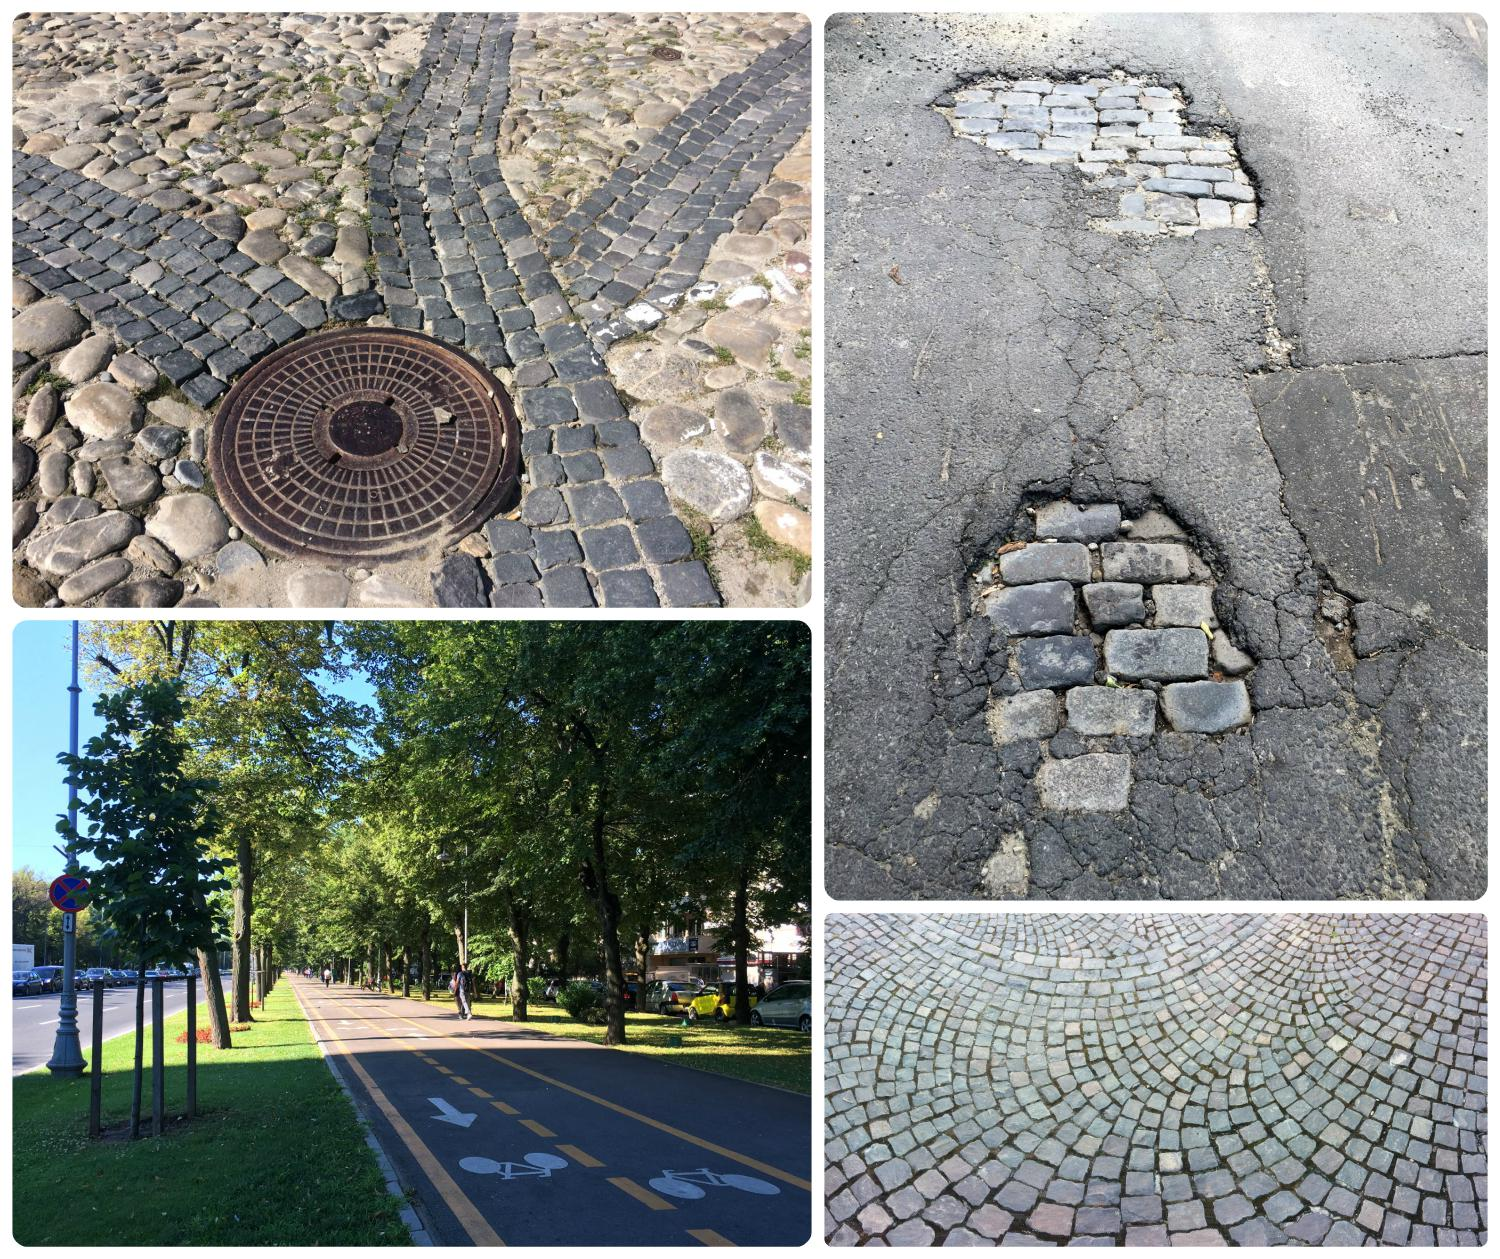 Conditions of streets, walkways, and paths vary greatly throughout the city. The streets and walkways we came across ran the gamut from cobblestone, narrow walkways, and wide two-lane paths.